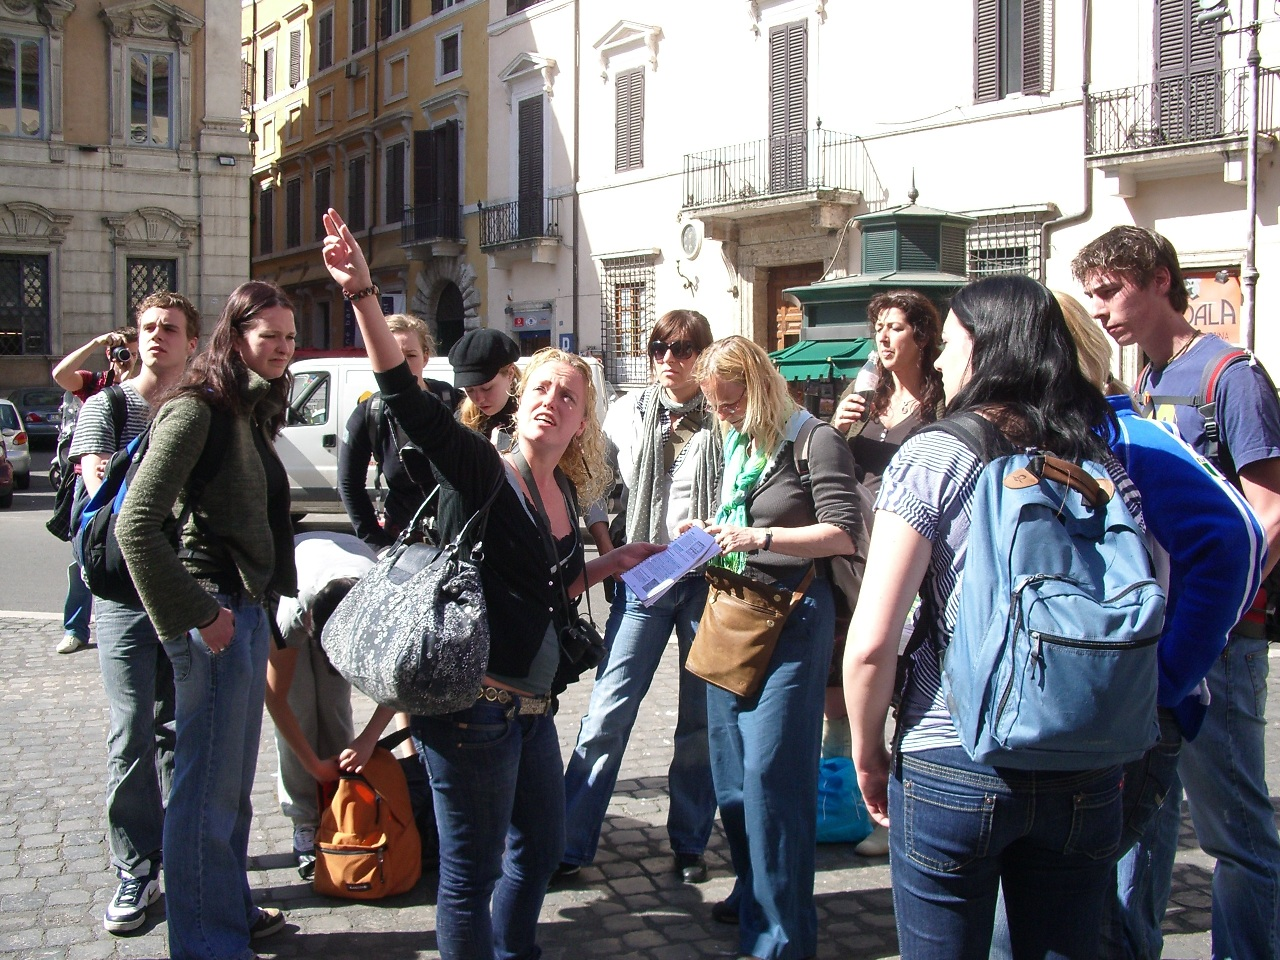 Excursion in Rome